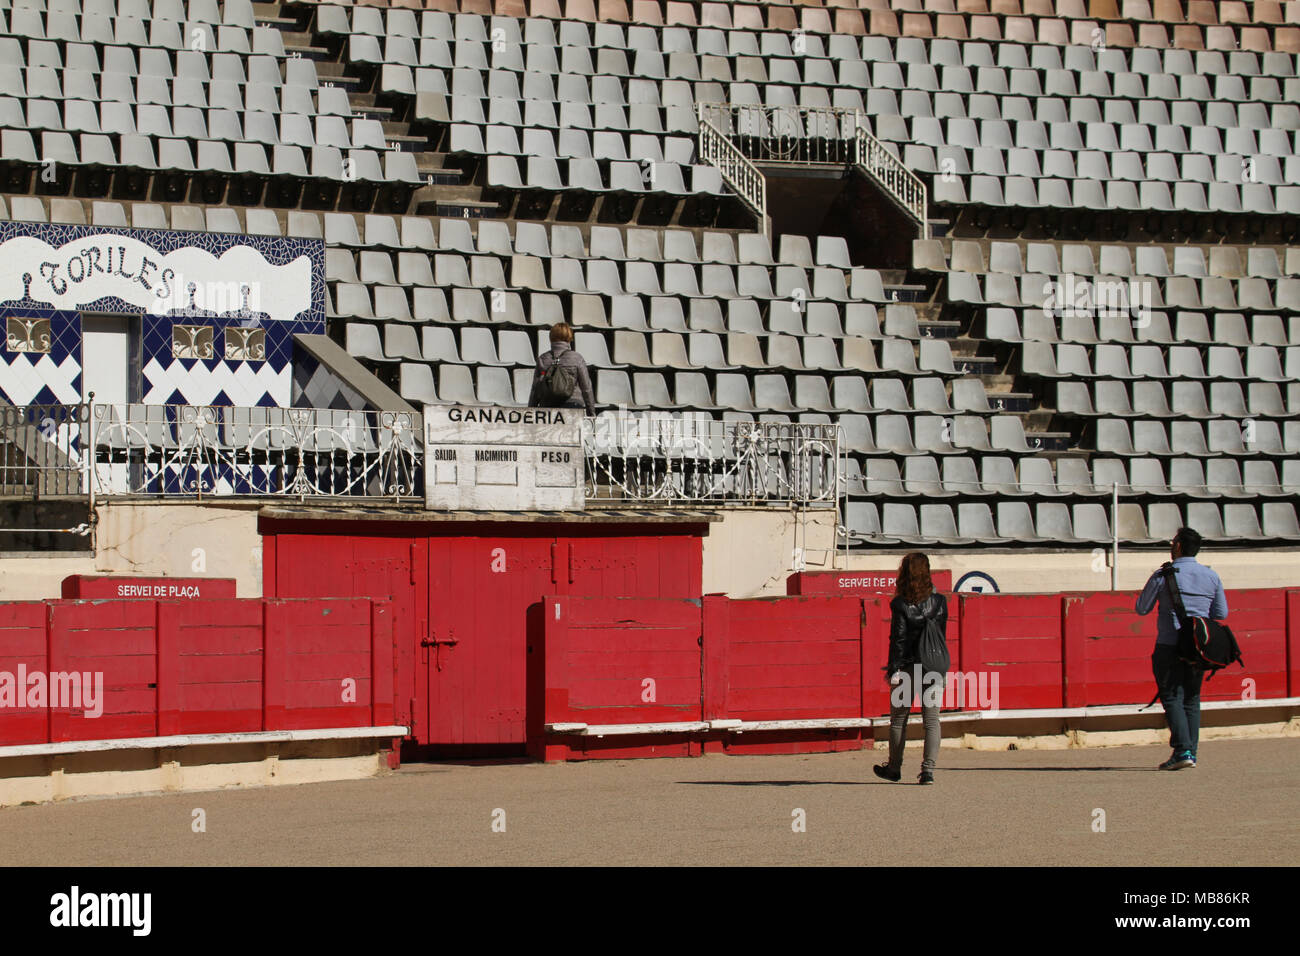 Barcelona, Spain -  31st March, 2018. Tourists seen in the arena at the La Monumental. This was the last bullfighting arena in commercial operation in Catalonia following a bullfights banning law on 28 July 2010. General view of Barcelona, Spain. @ David Mbiyu/Alamy Live News - Stock Image